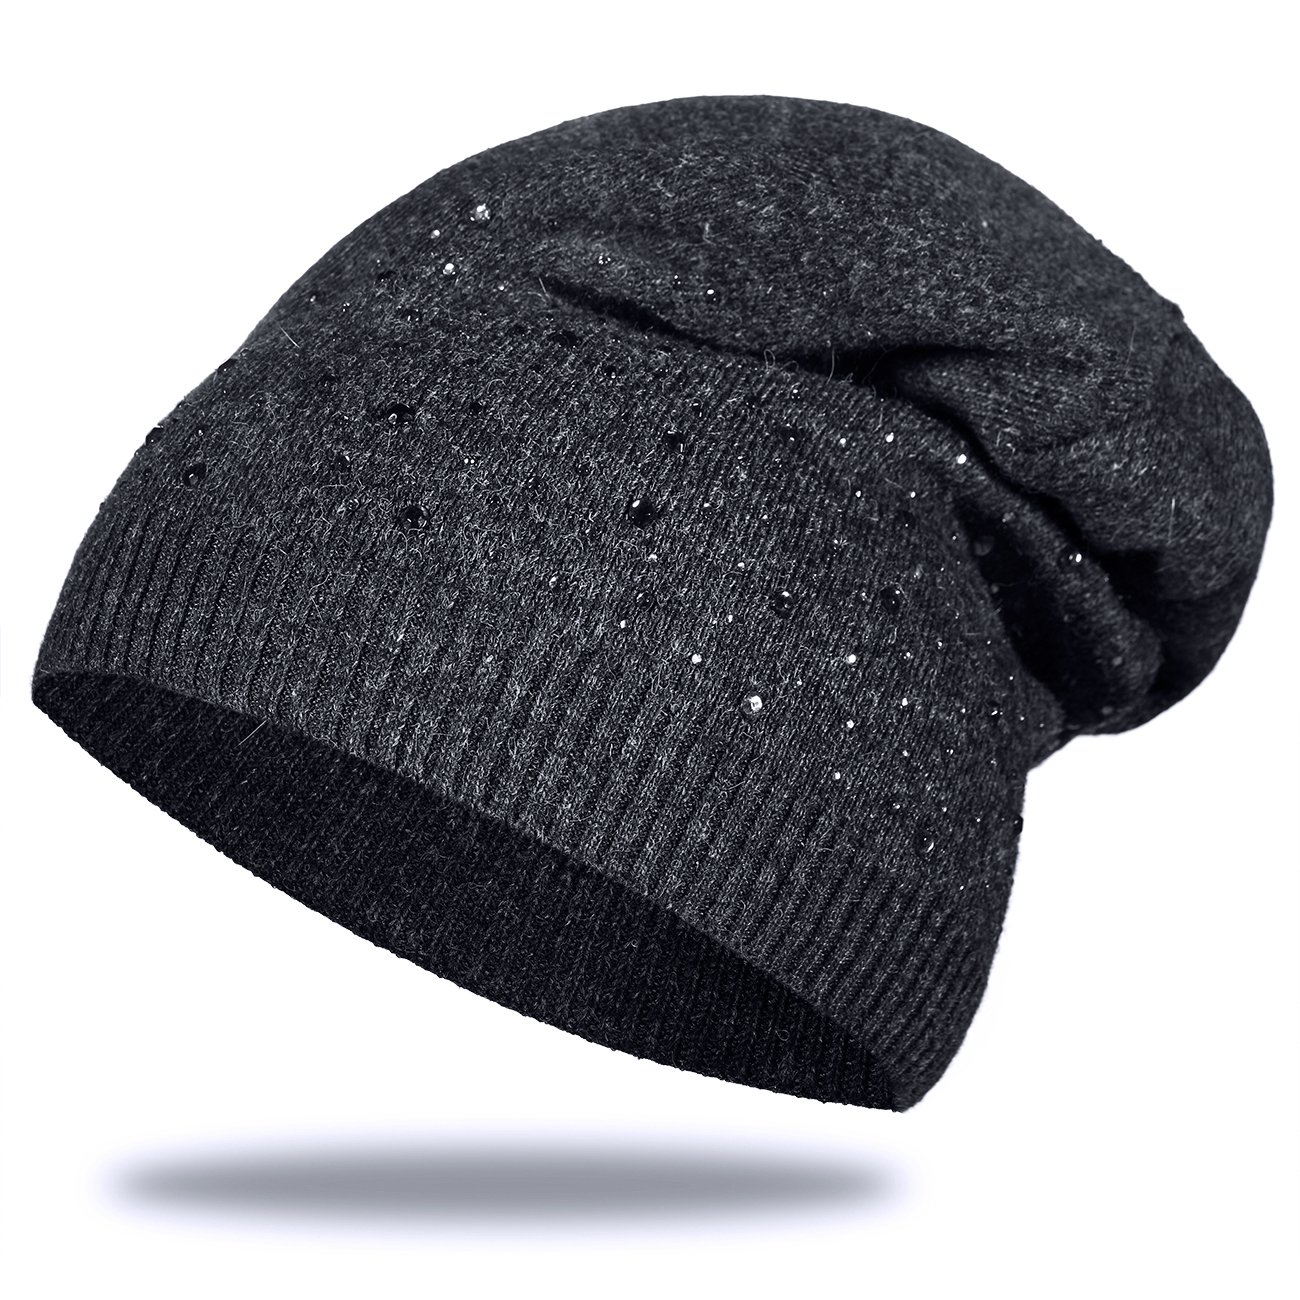 0f0ee5d97e8 Unisex Hat Men Women Glitter Star Printed Knit Beanie  Amazon.co.uk   Clothing